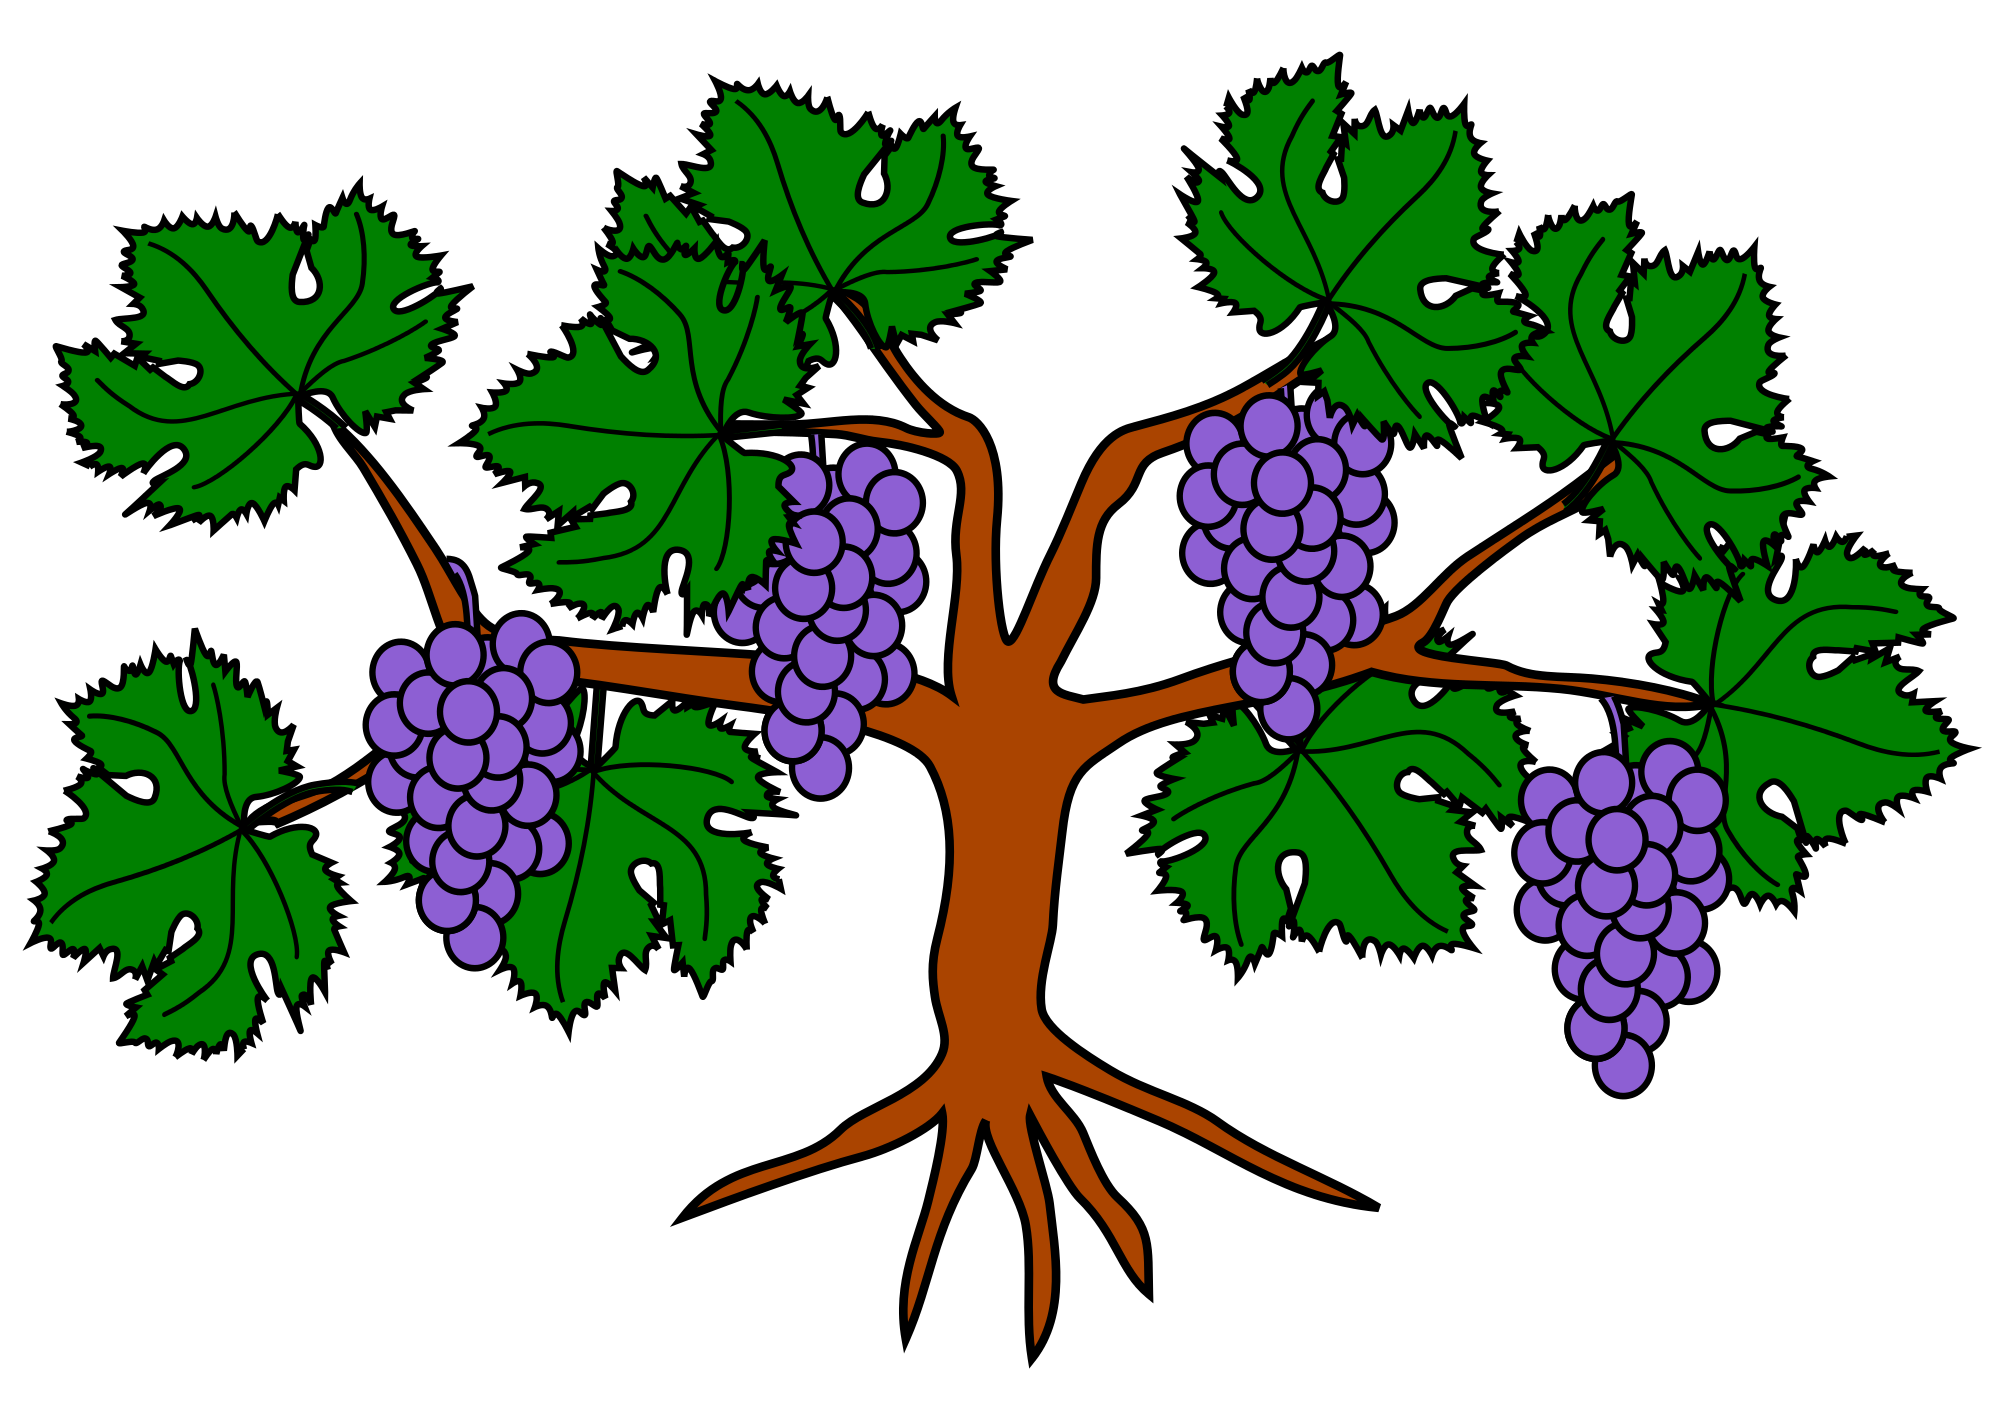 File grapevine wikimedia commons. Vines svg grape image royalty free download